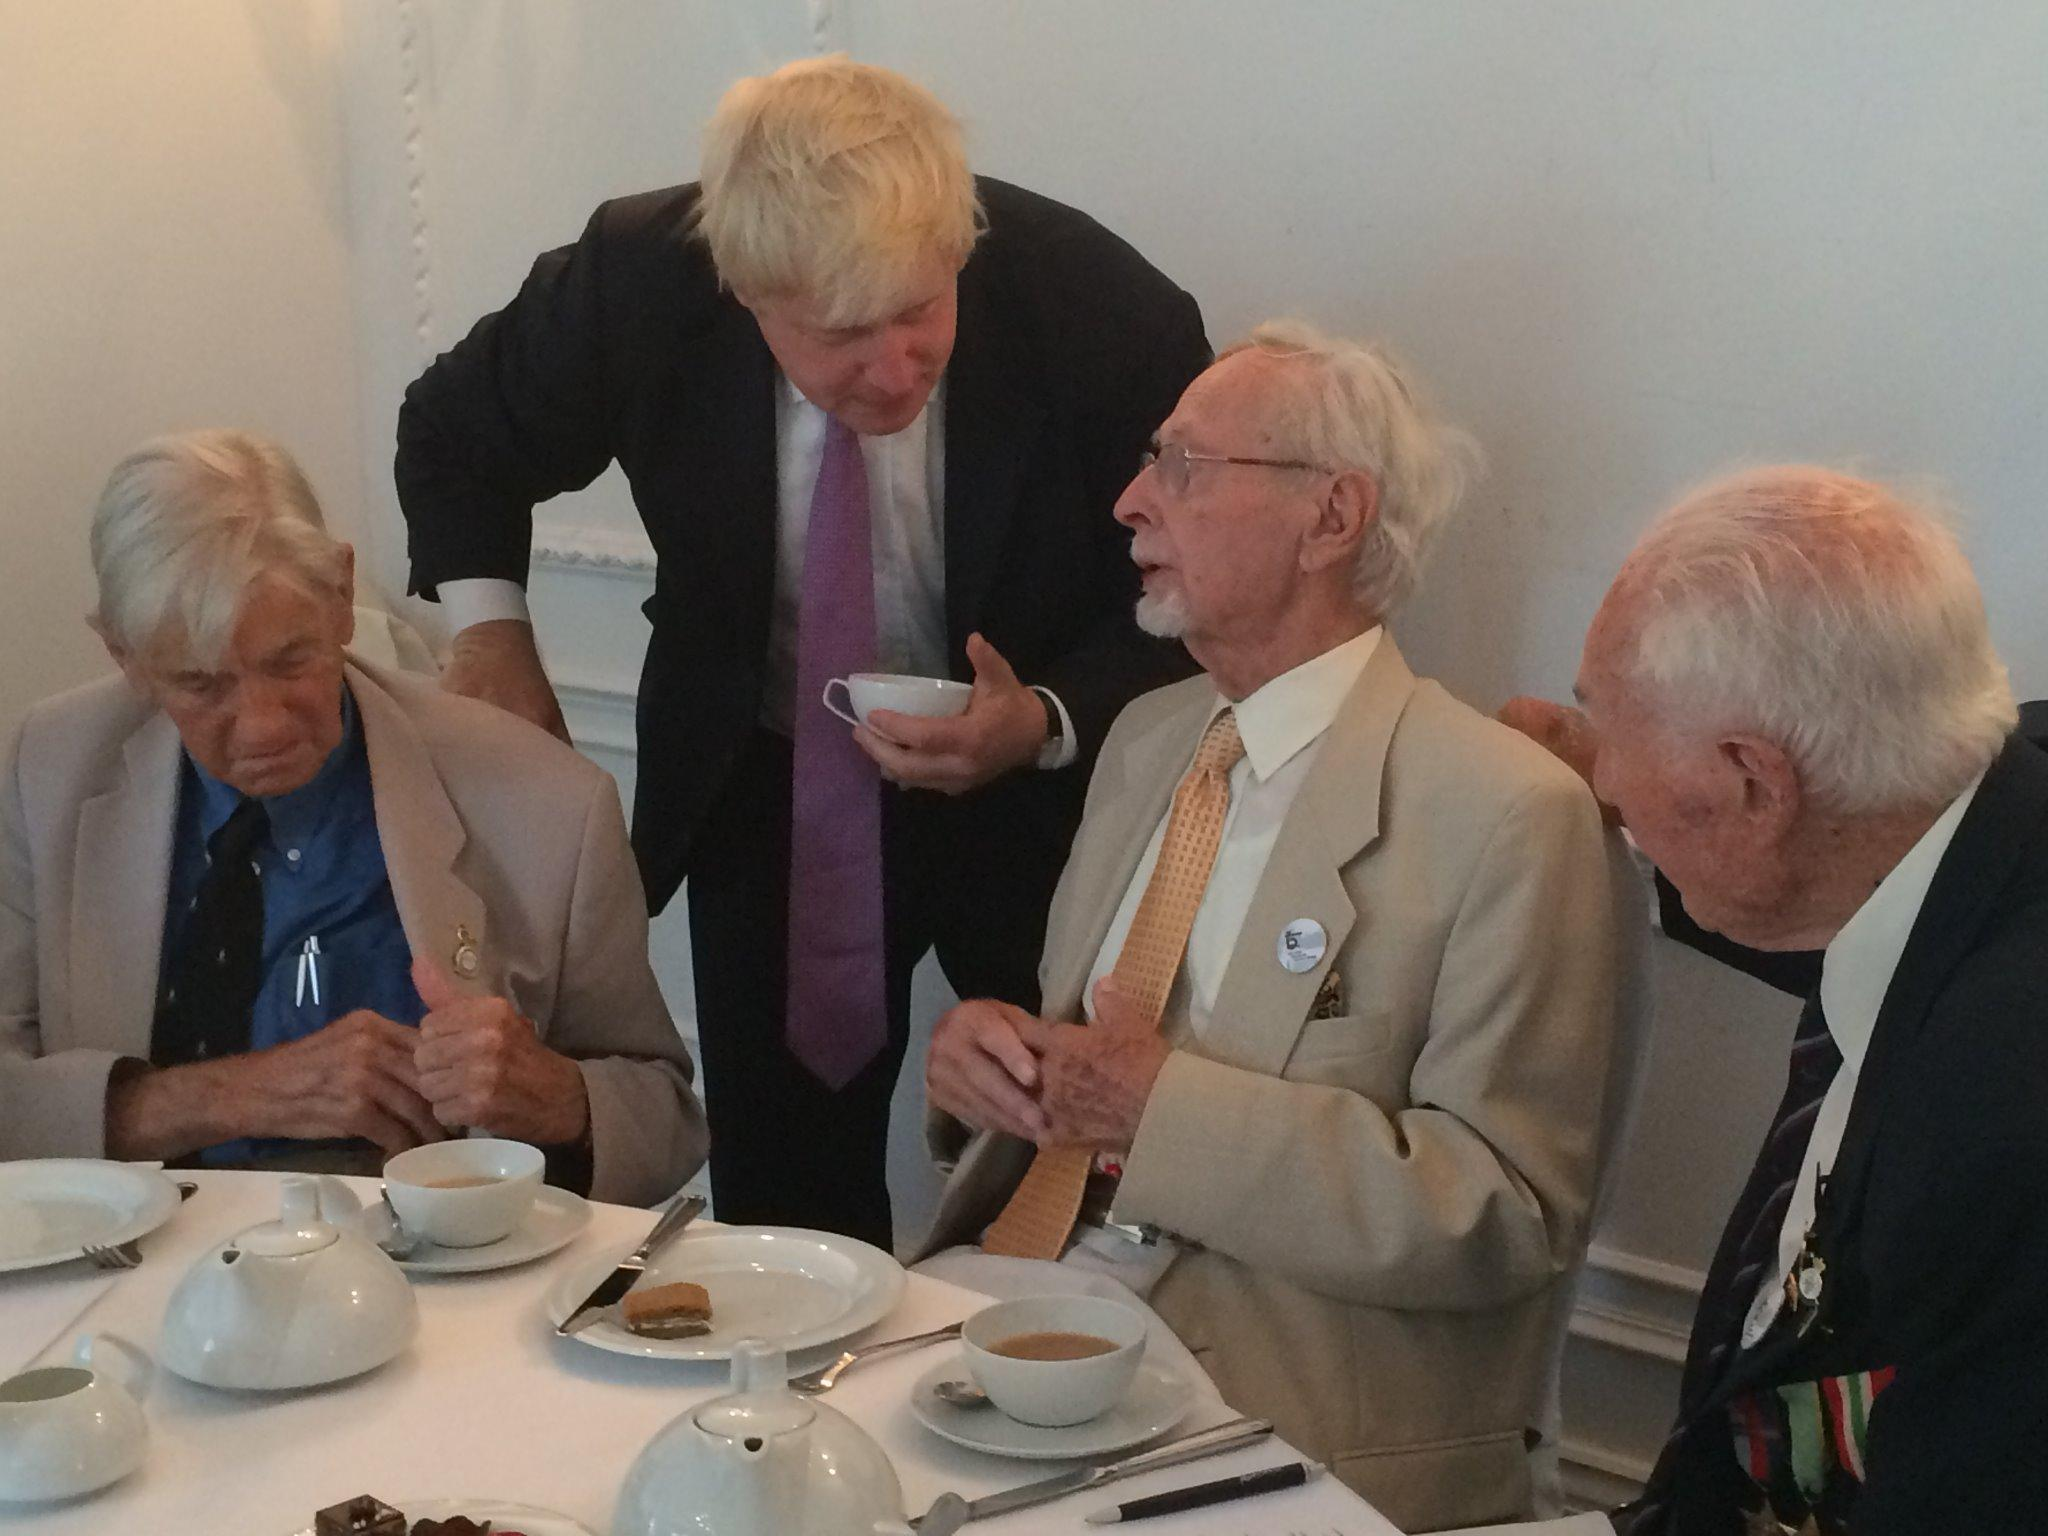 I've just been attending a 'Great British Afternoon Tea Party' to meet with veterans of the #WarsawUprising http://t.co/MlJgzmGd5s